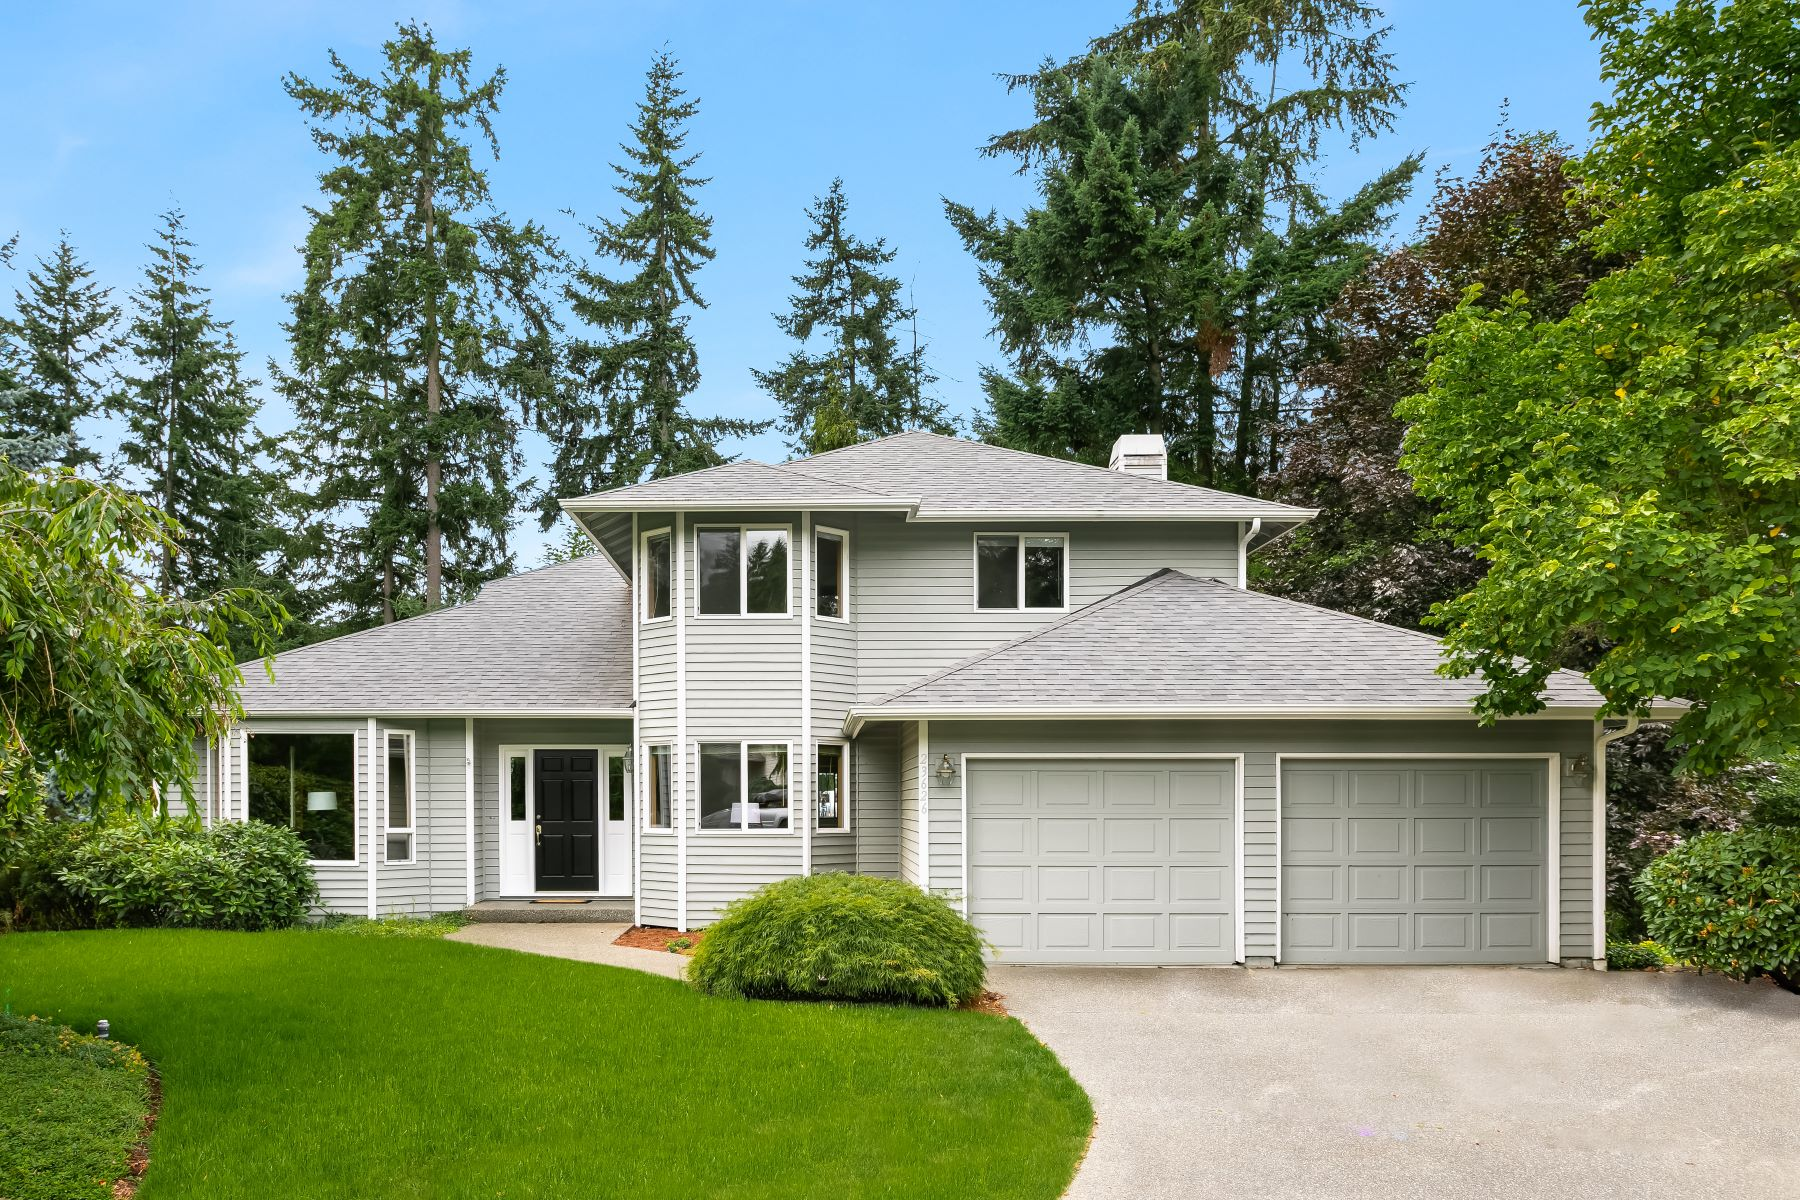 Single Family Homes for Sale at 23626 97th Place West, Edmonds, WA 98020 23626 97th Place West Edmonds, Washington 98020 United States